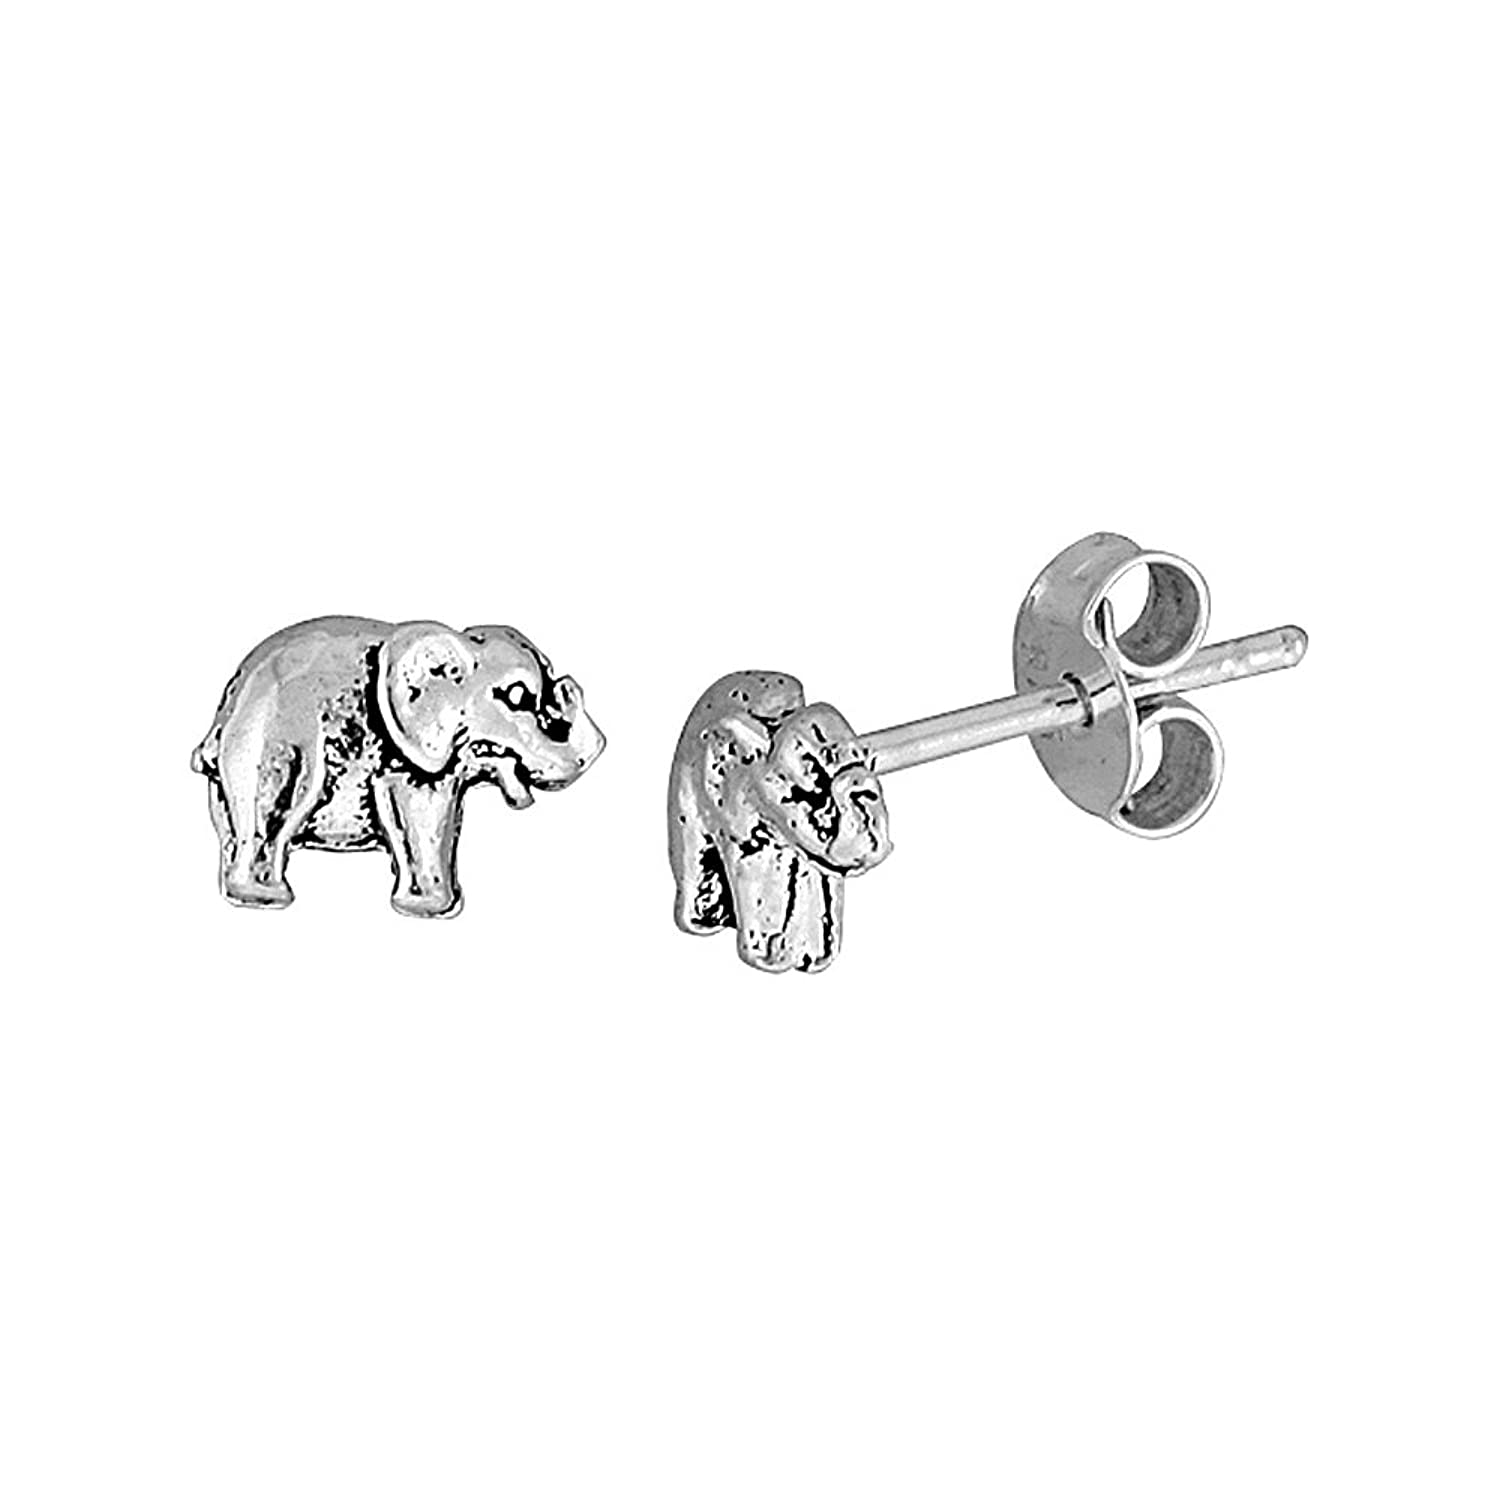 sharpen product stud gold op wid jsp earrings prd elephant hei